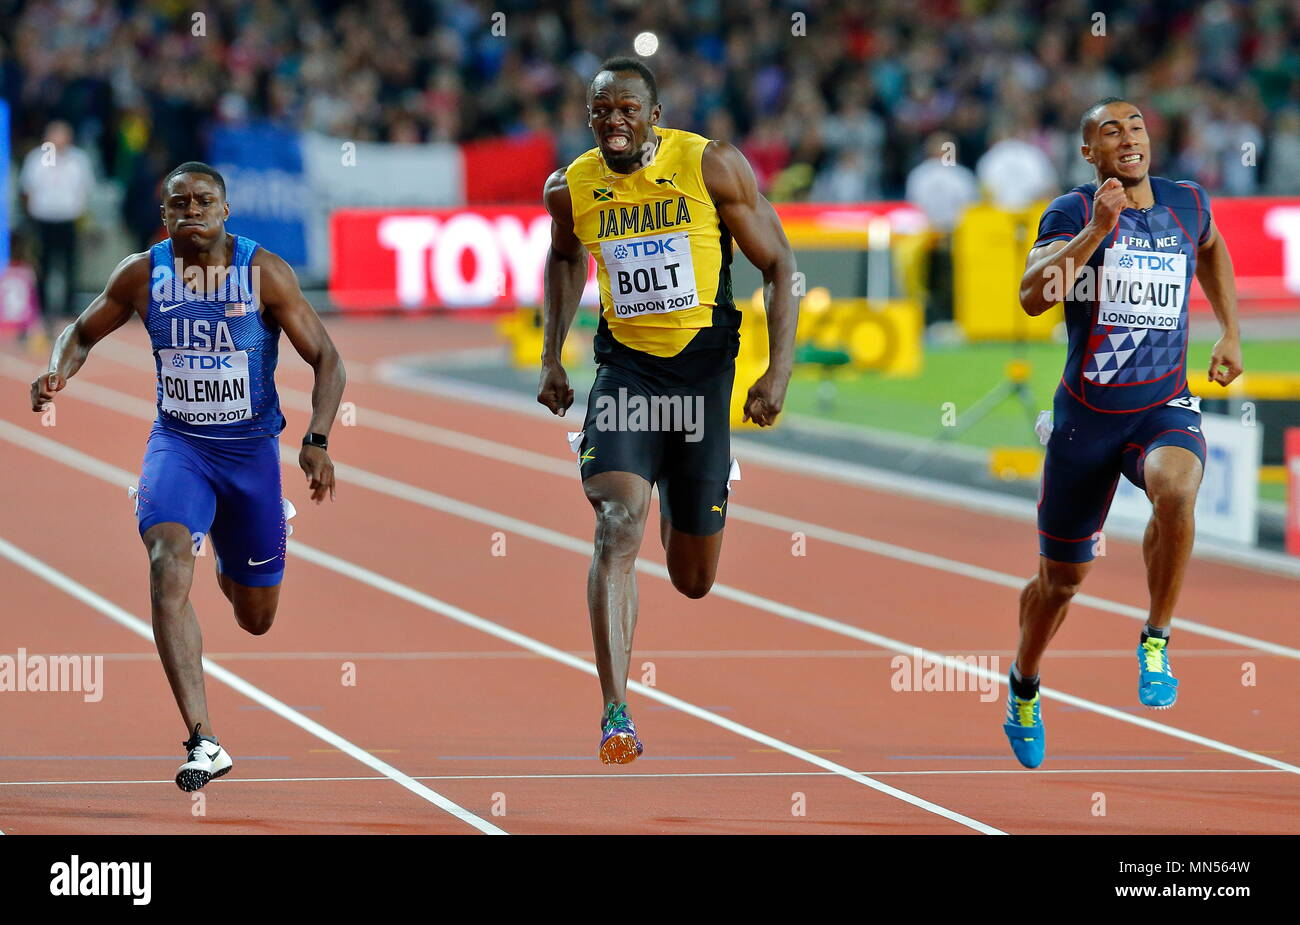 LONDON, ENGLAND - AUGUST 05: Usain Bolt of Jamaica  running in lane 4 of the Mens 100m Final competing with Christian Coleman of the USA and Jimmy Vicaut of France during day two of the 16th IAAF World Athletics Championships London 2017 at The London Stadium on August 5, 2017 in London, United Kingdom. Photo by Paul Cunningham - Stock Image